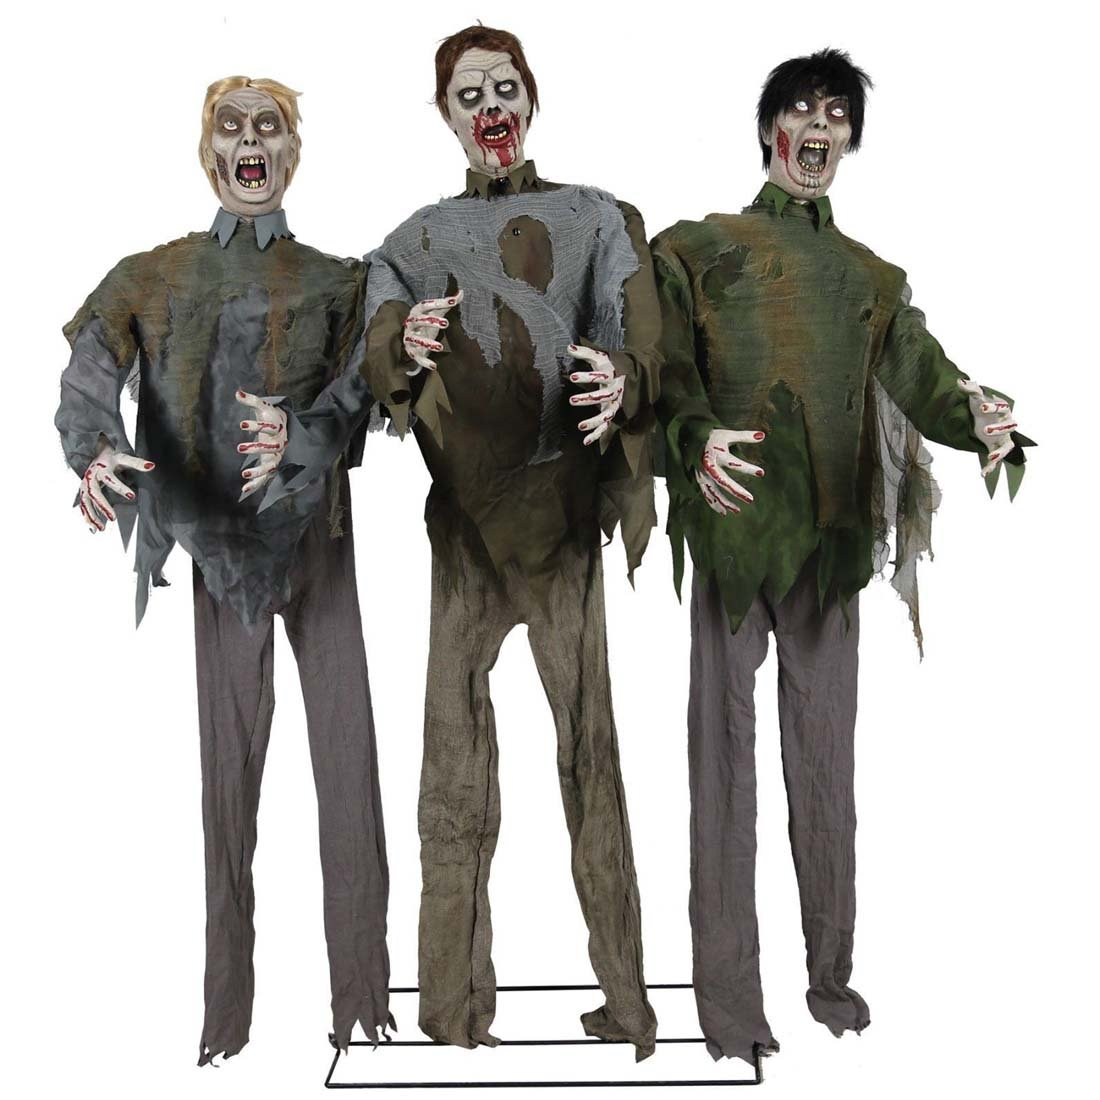 HALLOWEEN ANIMATED LIFE SIZE WALKING DEAD ZOMBIE HORDE PROP -Easy-to-assemble